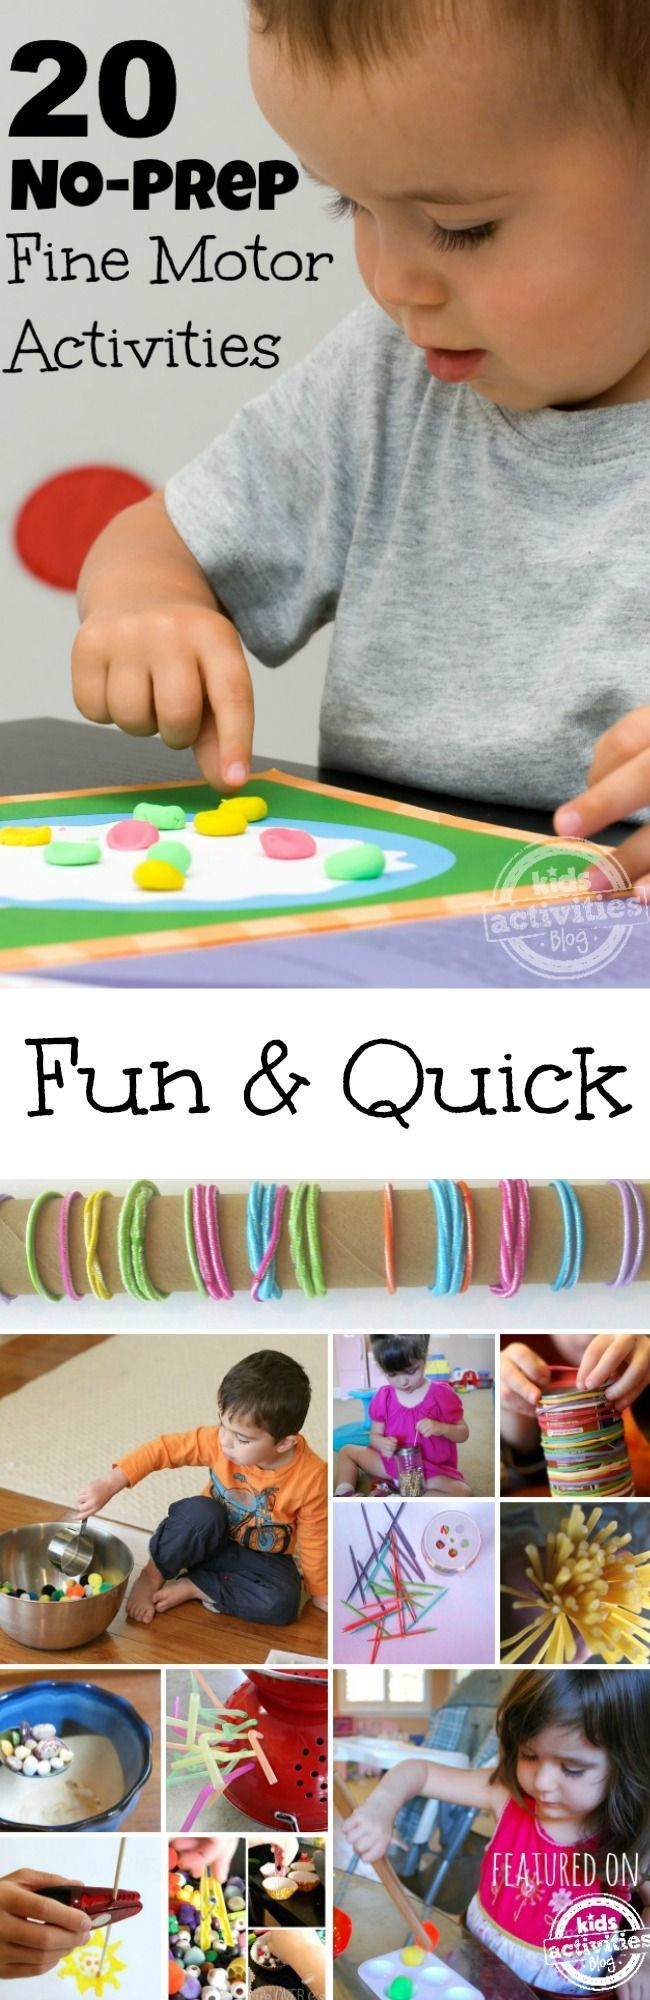 These activities for kids are so easy to set-up. I love #19!